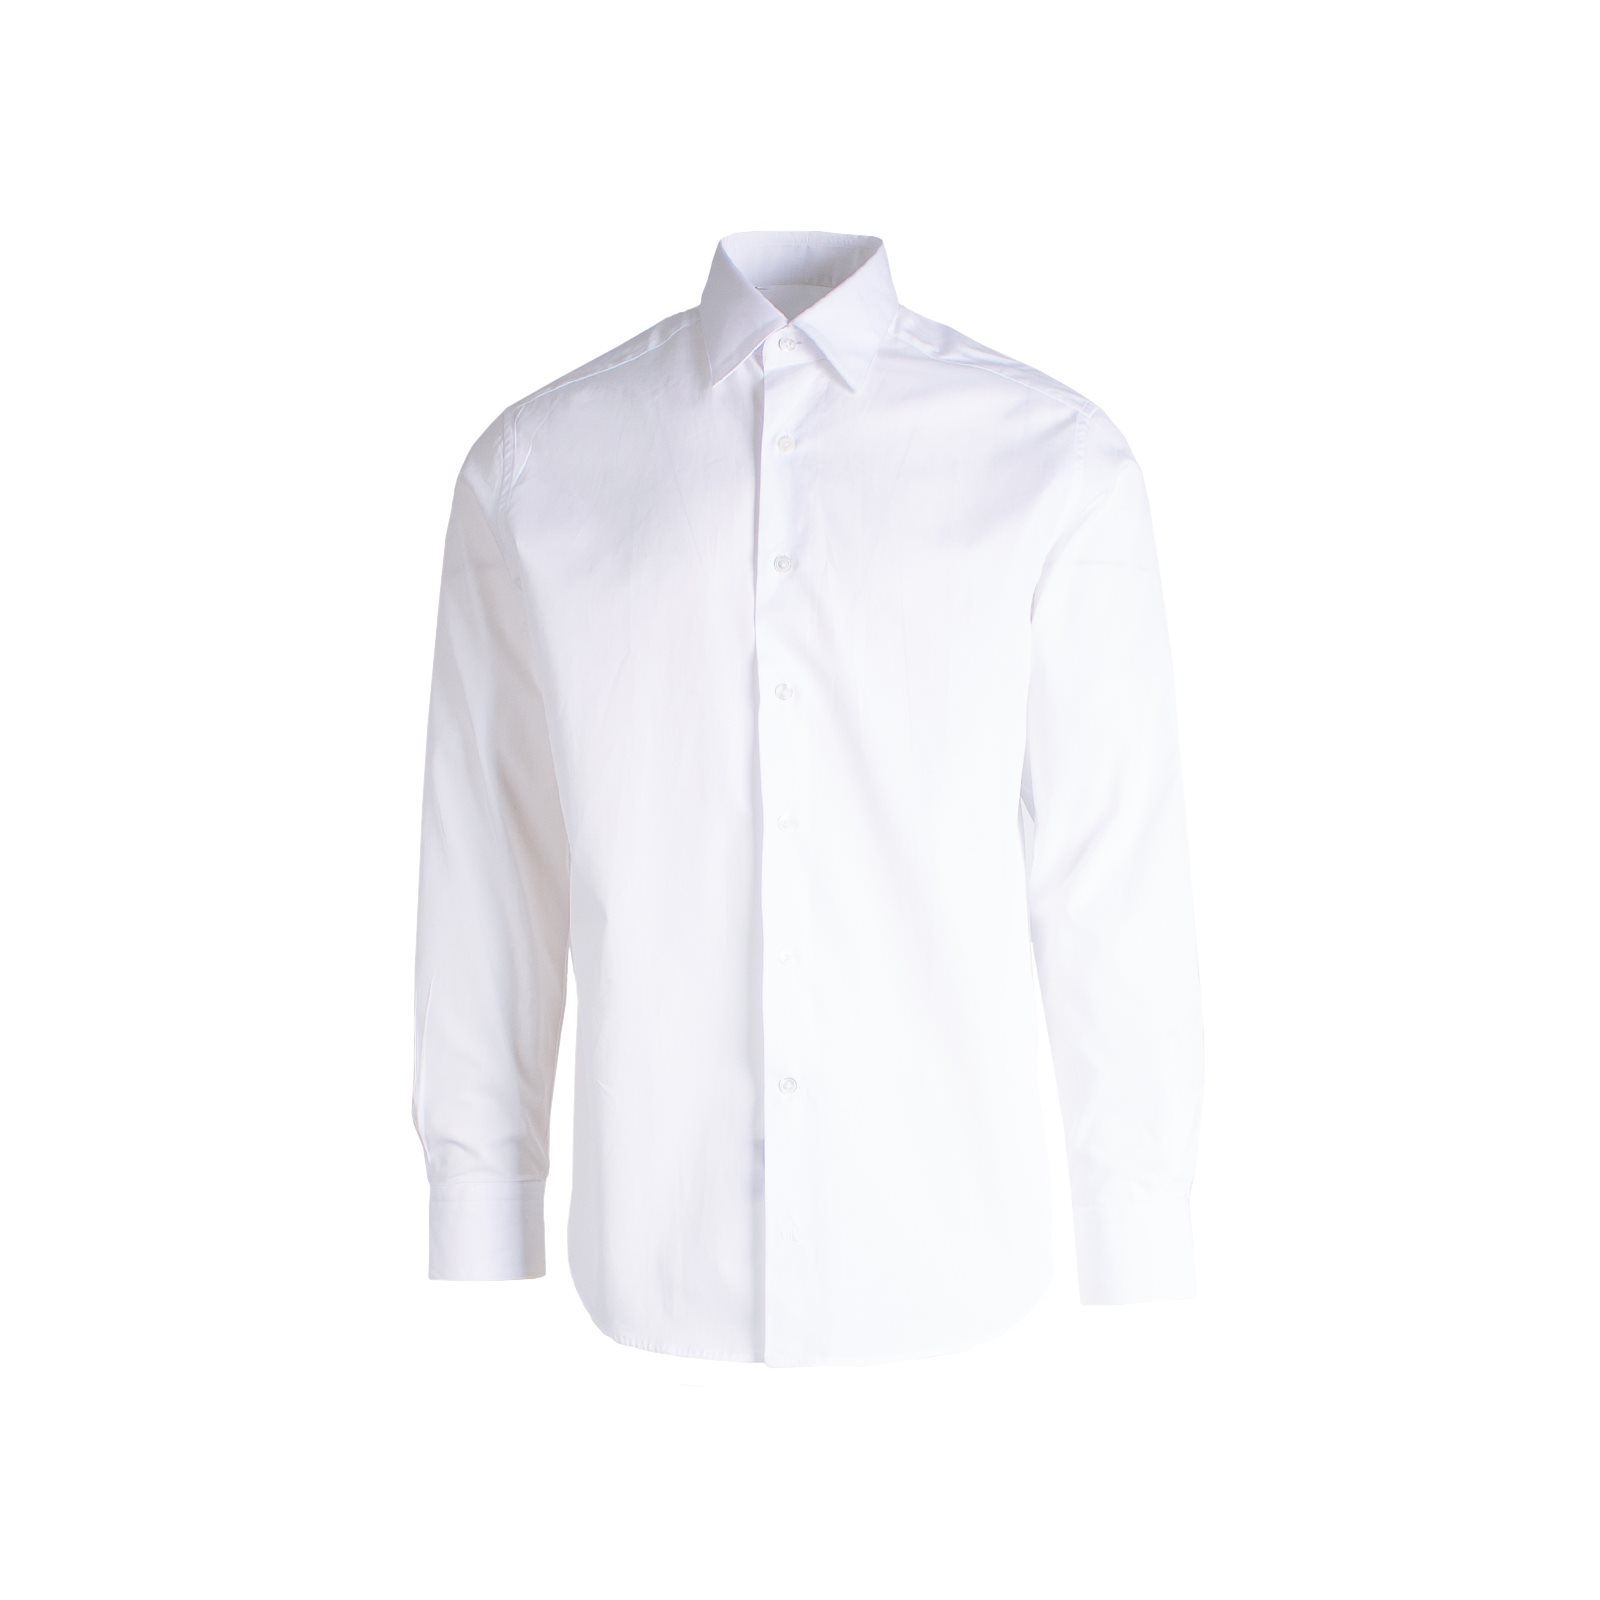 Lanvin Paris Shirt